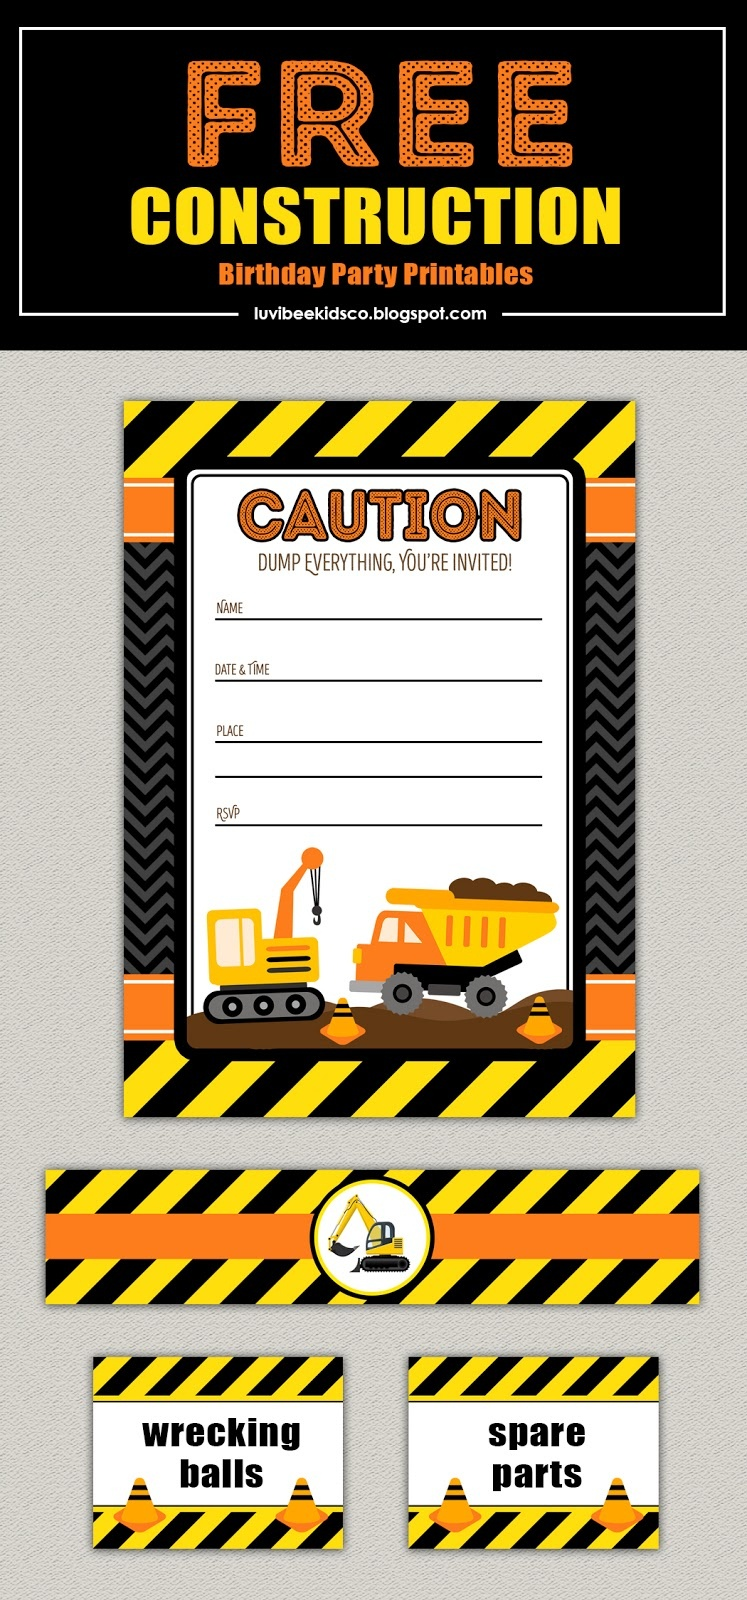 Free Construction Birthday Party Printables - Free Printable Construction Birthday Invitation Templates